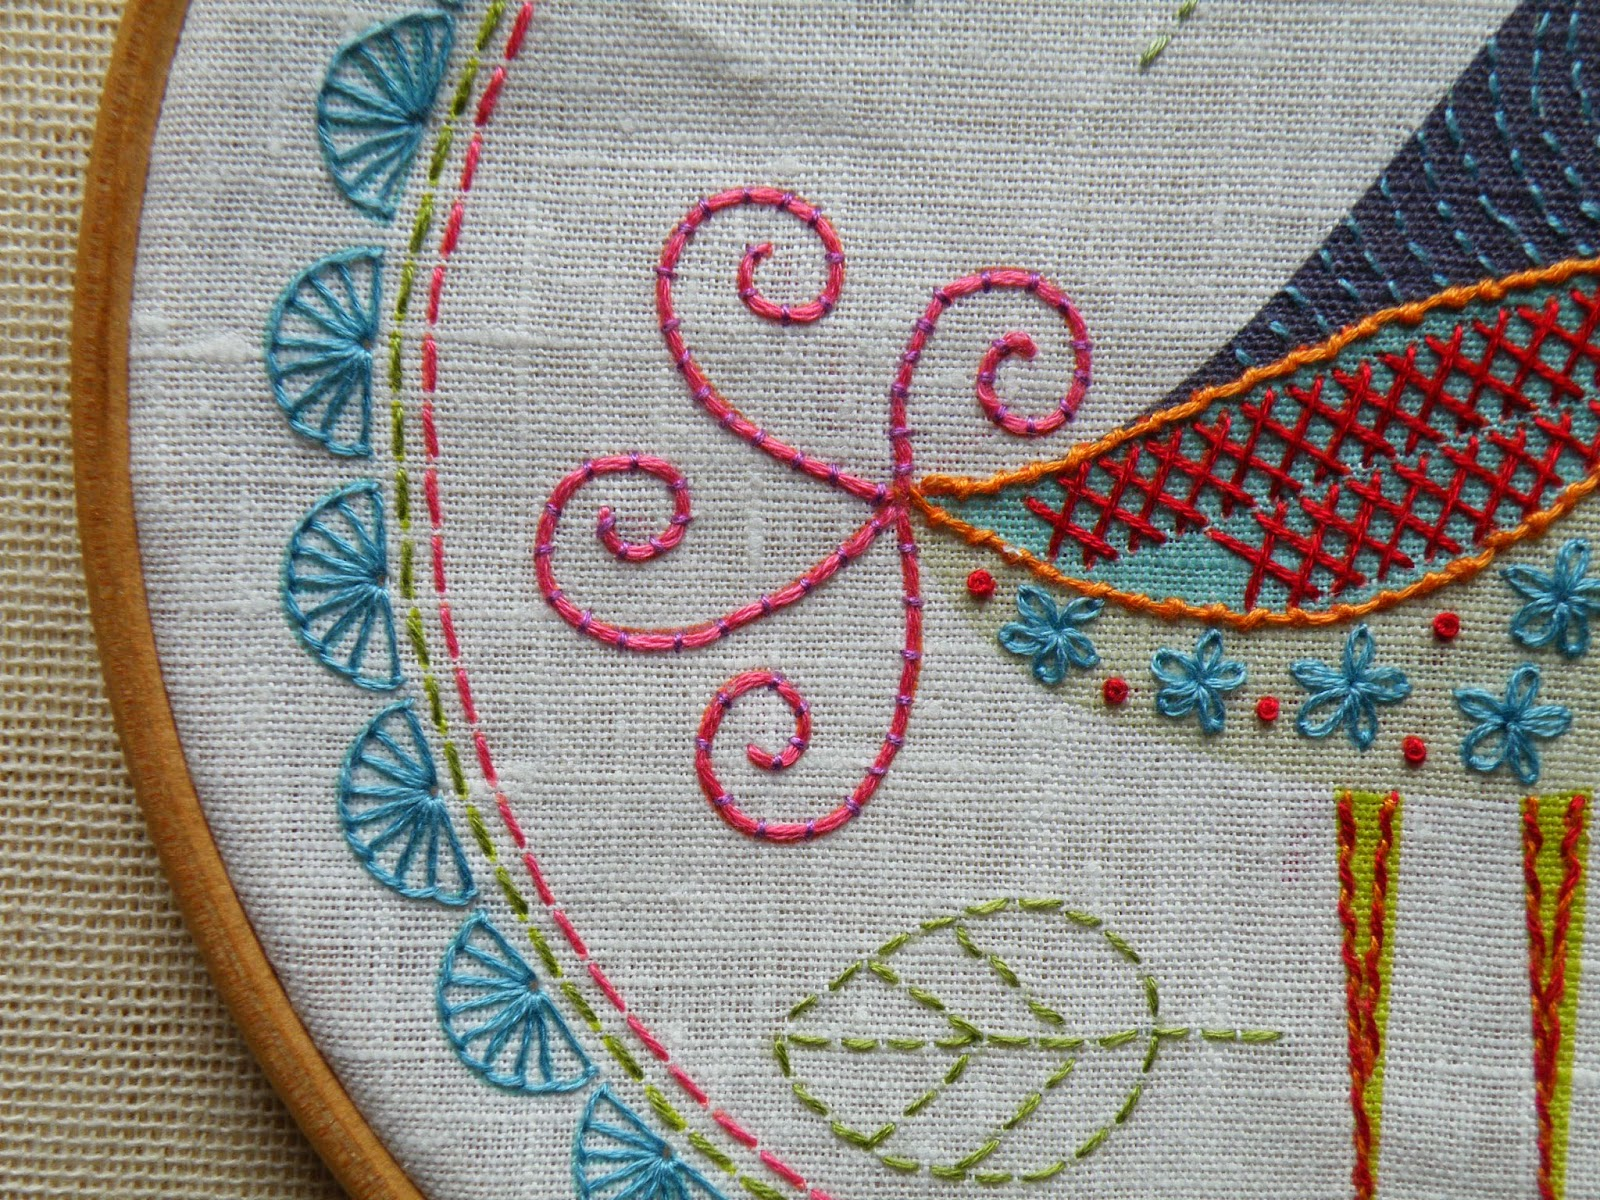 Birdie 1 Embroidery Kit detail